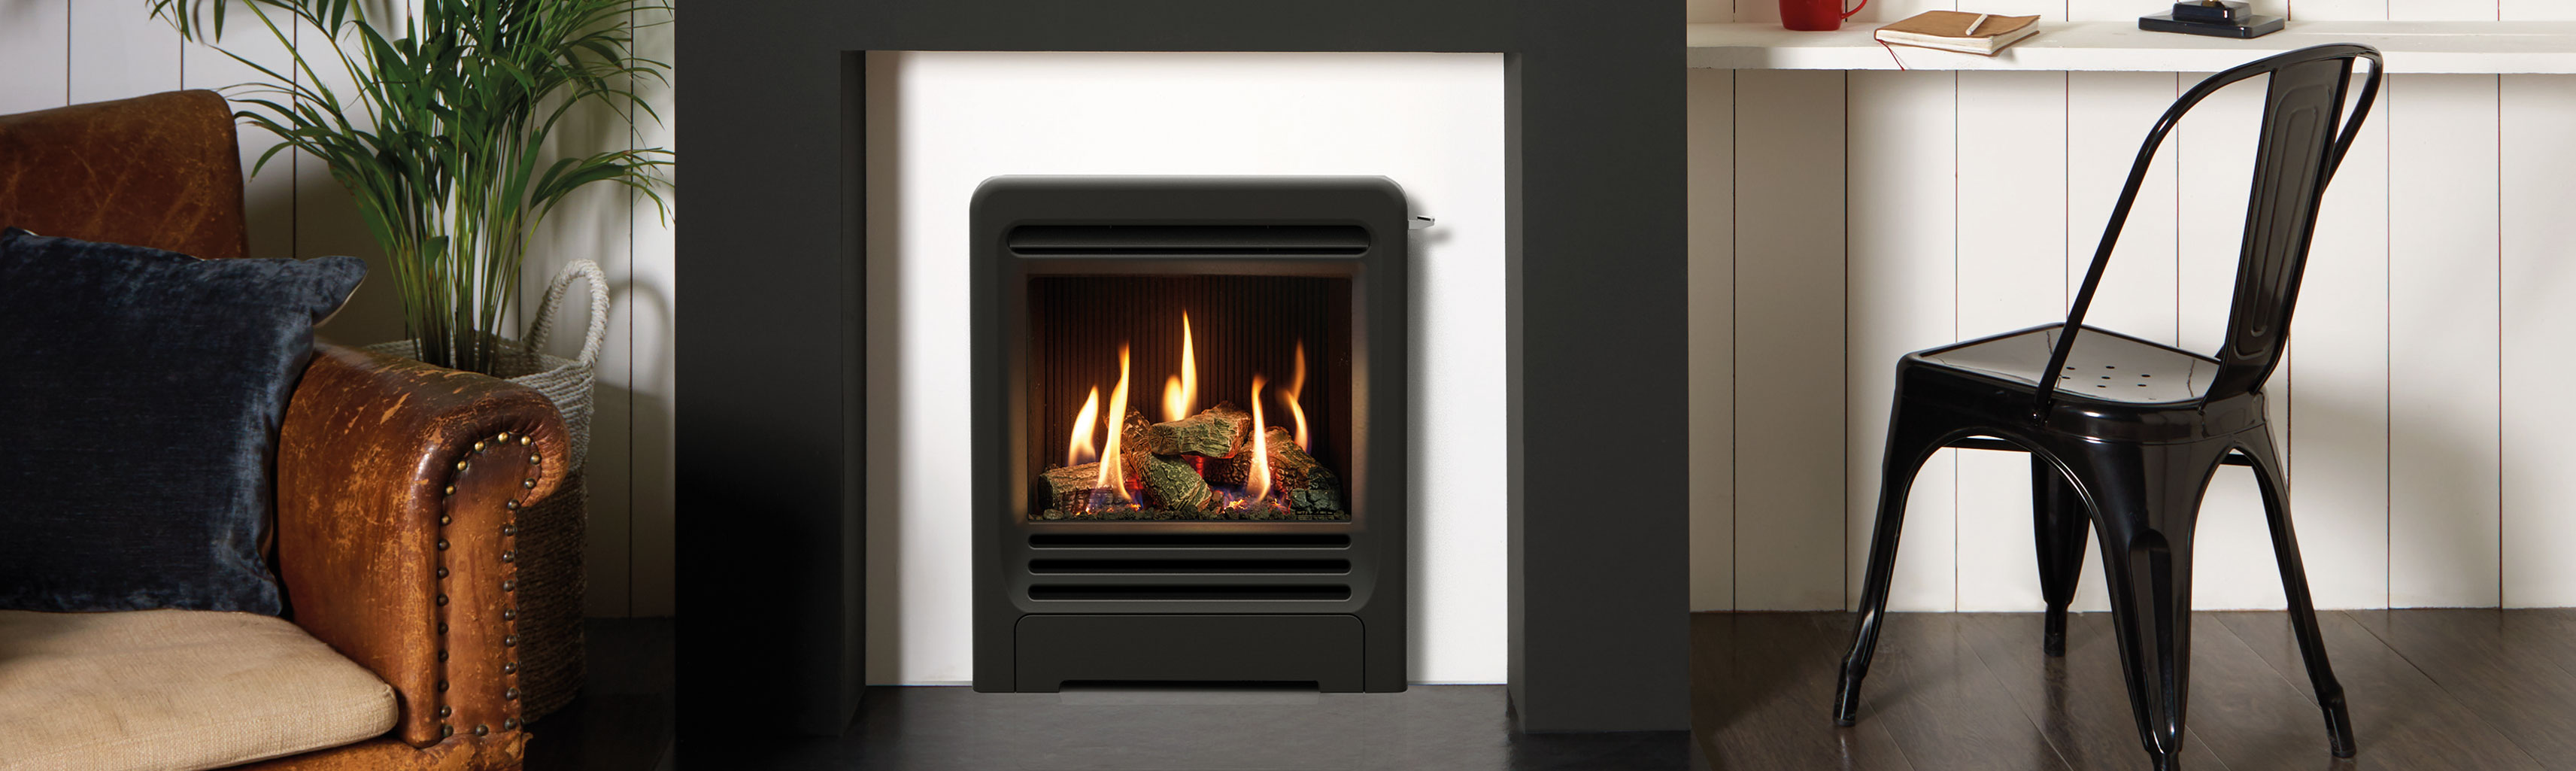 Cool Inset Gas Fires Gazco Built In Hearth Mounted Fires Interior Design Ideas Apansoteloinfo